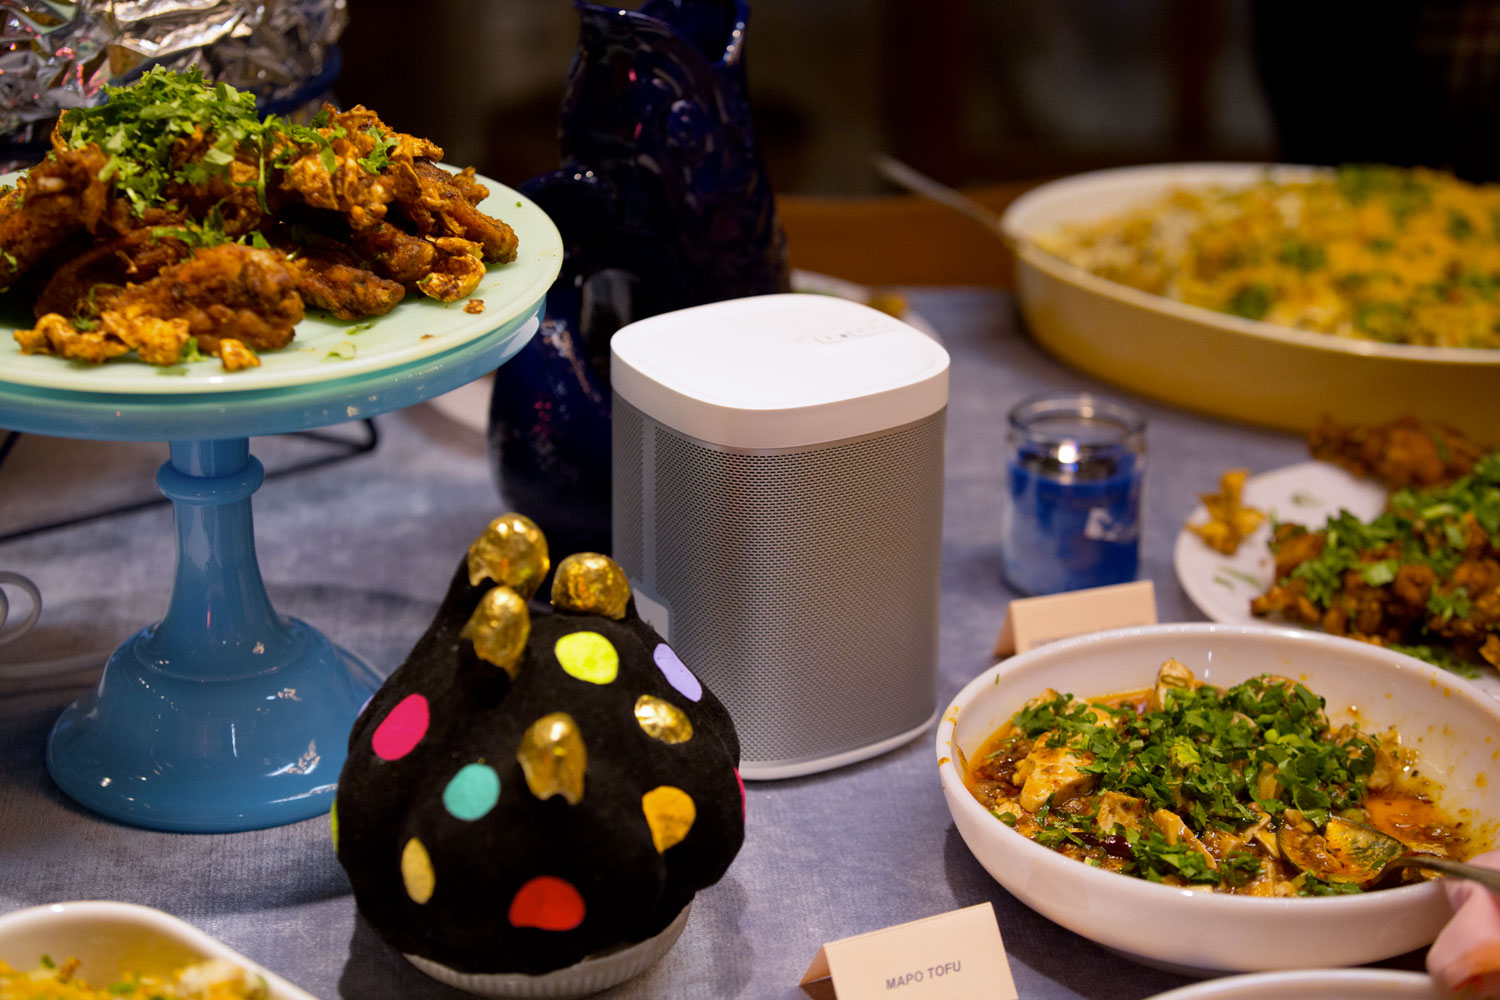 sonos-mind-of-a-chef-potluck-music-special-tablescape-2